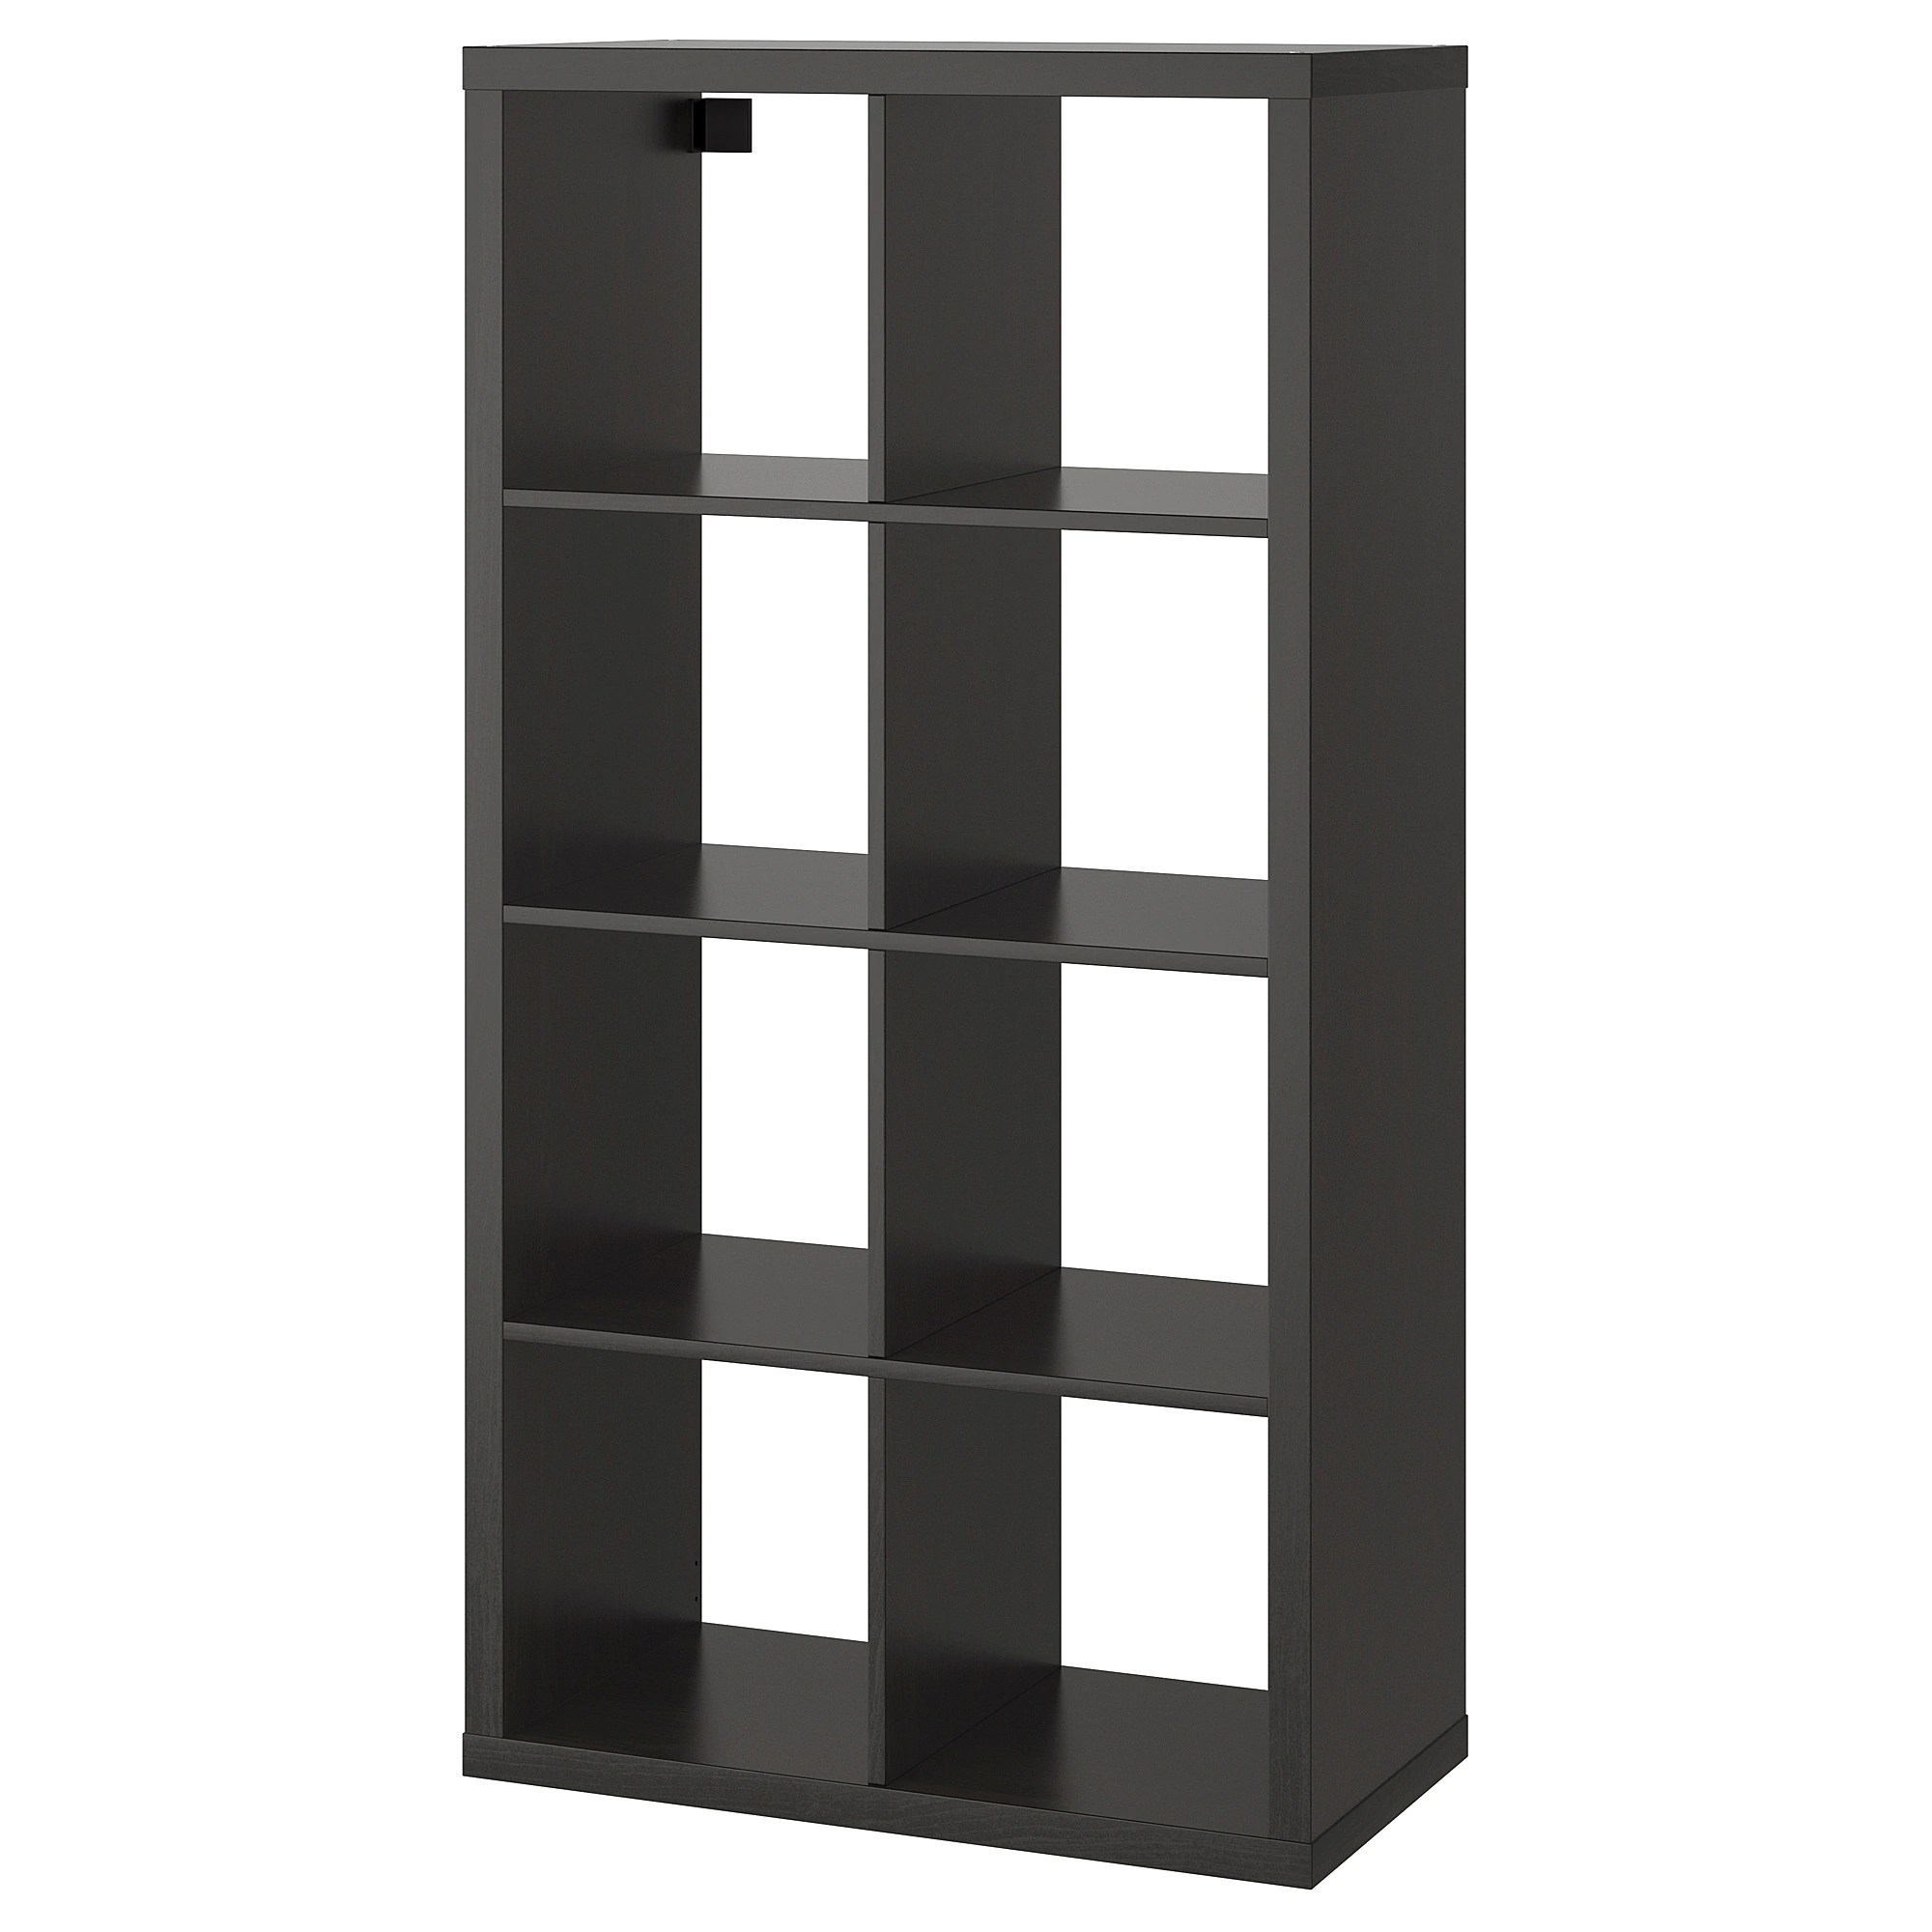 Range Vinyle Ikea Black Cube Shelves Ikea Best Interior Furniture